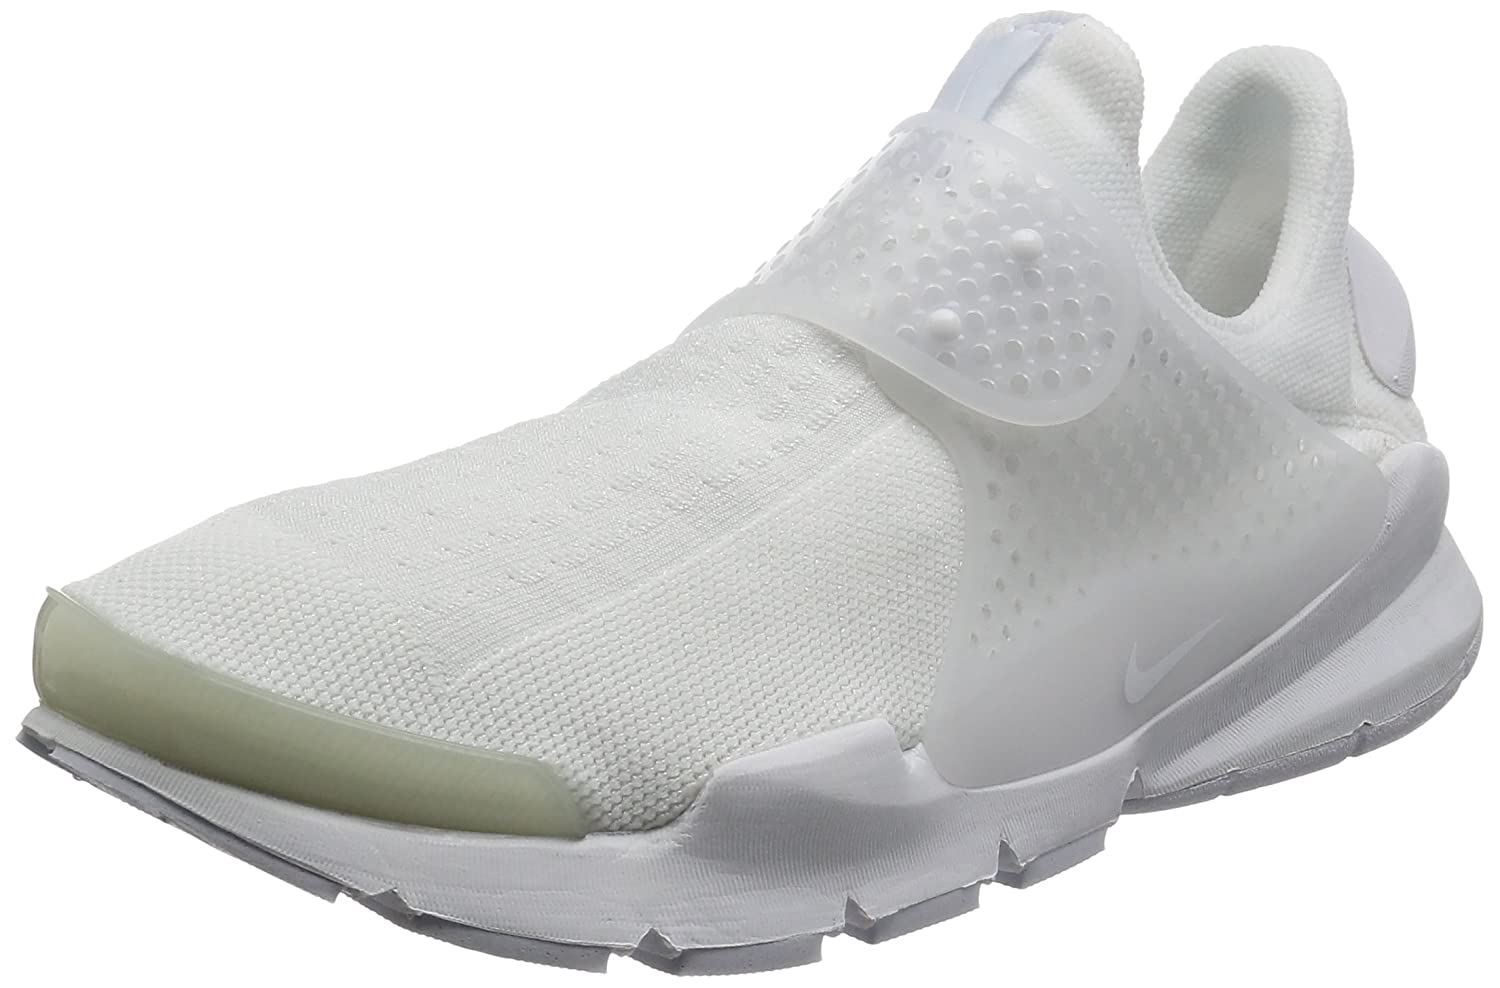 NIKE Men's Sock Dart Running Shoe B06WWG3DFT 11 D(M) US|White/White-white-black